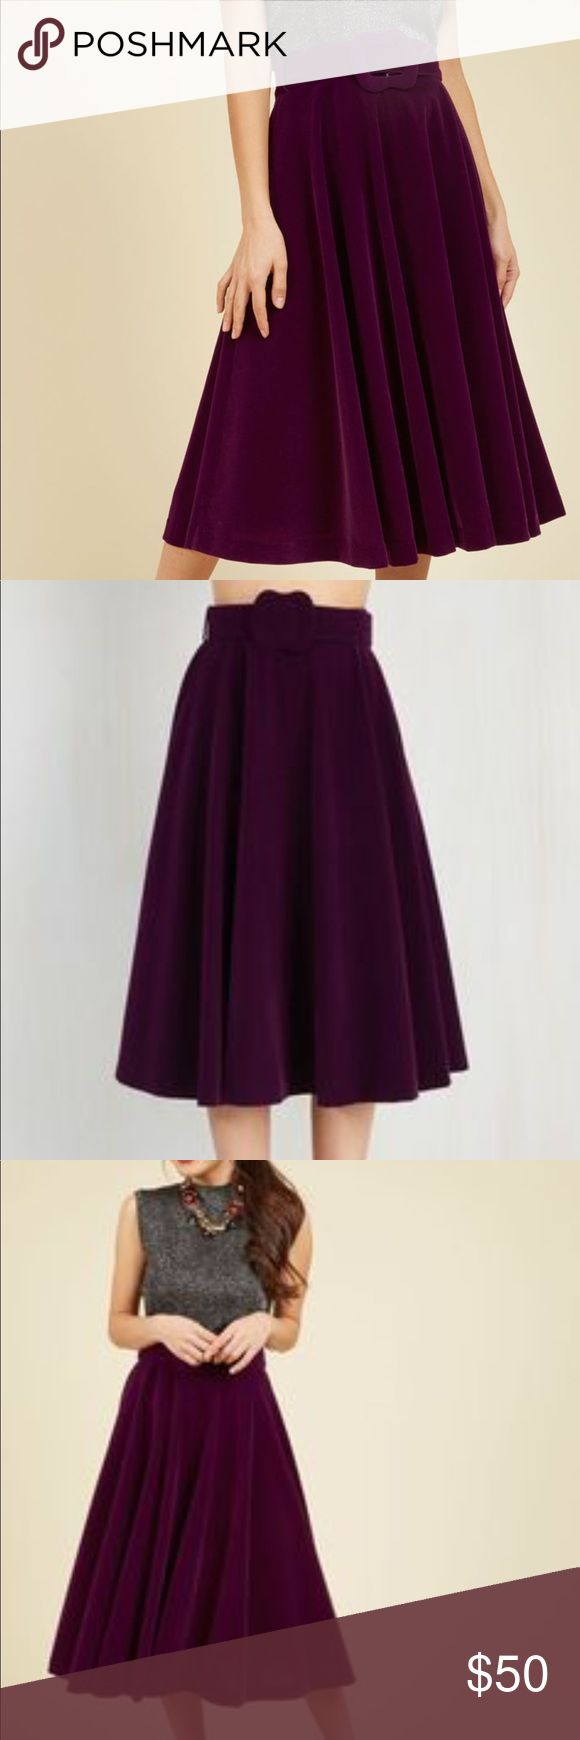 """Purple Velvet Winter Skirt Belt Modcloth S/M New with tags- size UK 10/ US 6. Modcloth's """"Make Your Presence Throne Skirt"""". This skirt is the most beautiful thing ever! I would never let it go if it fit me! Modcloth Skirts Midi"""